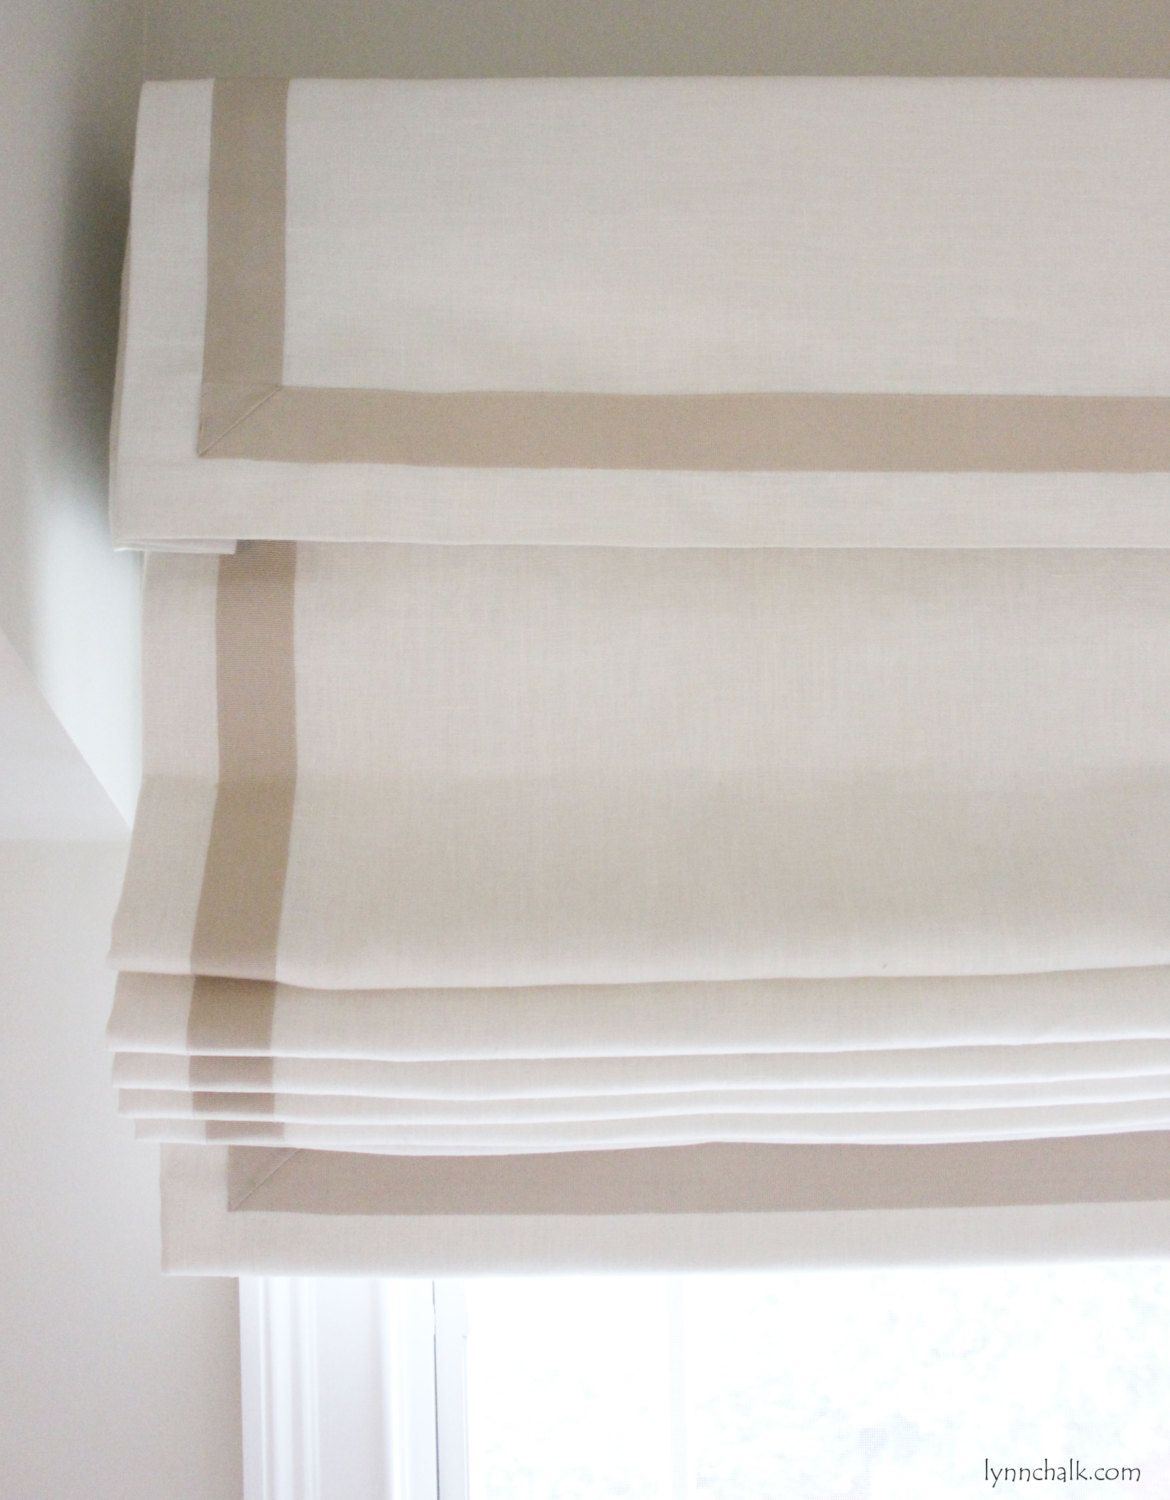 Snow white thermal fabric roman shades free shipping on orders over - Roman Shade In Kravet Dublin Linen With Samuel Sons Grosgrain Ribbon Trim